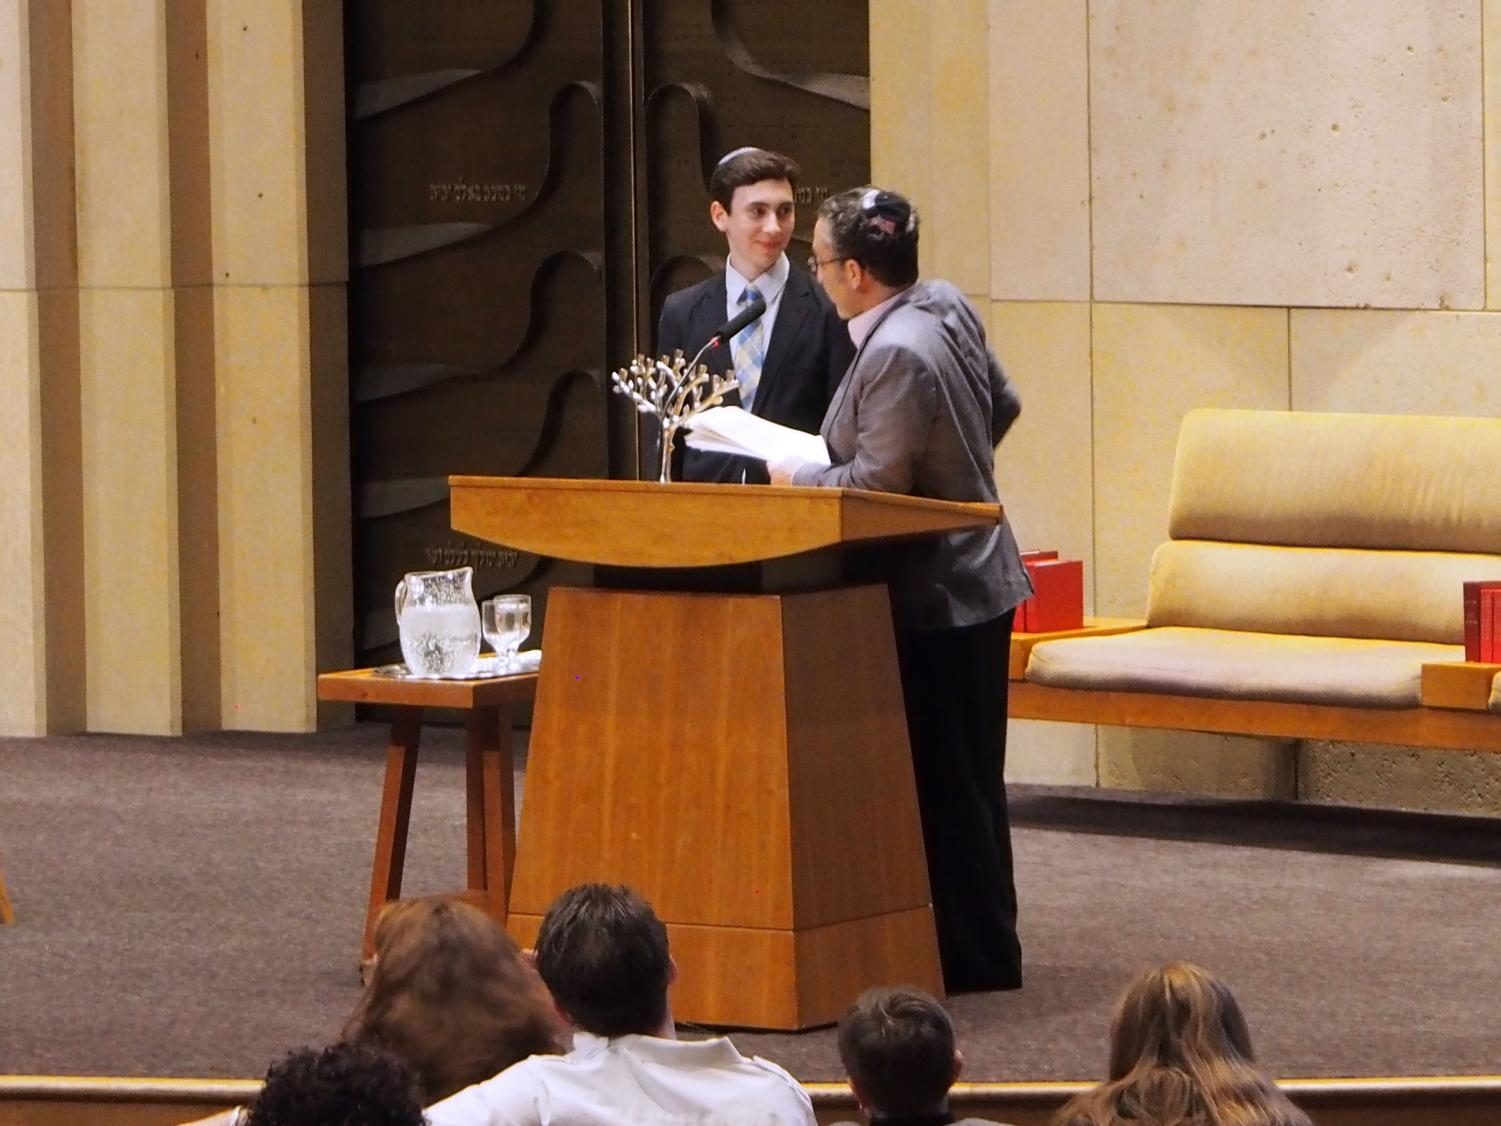 Senior Yonah Davis accepts his Howie Stillman Young Leadership Award from Joel Glaser at Adath Jeshurun Synagogue. The award is given annually to young, Jewish leaders who are active in a Twin Cities' youth group.